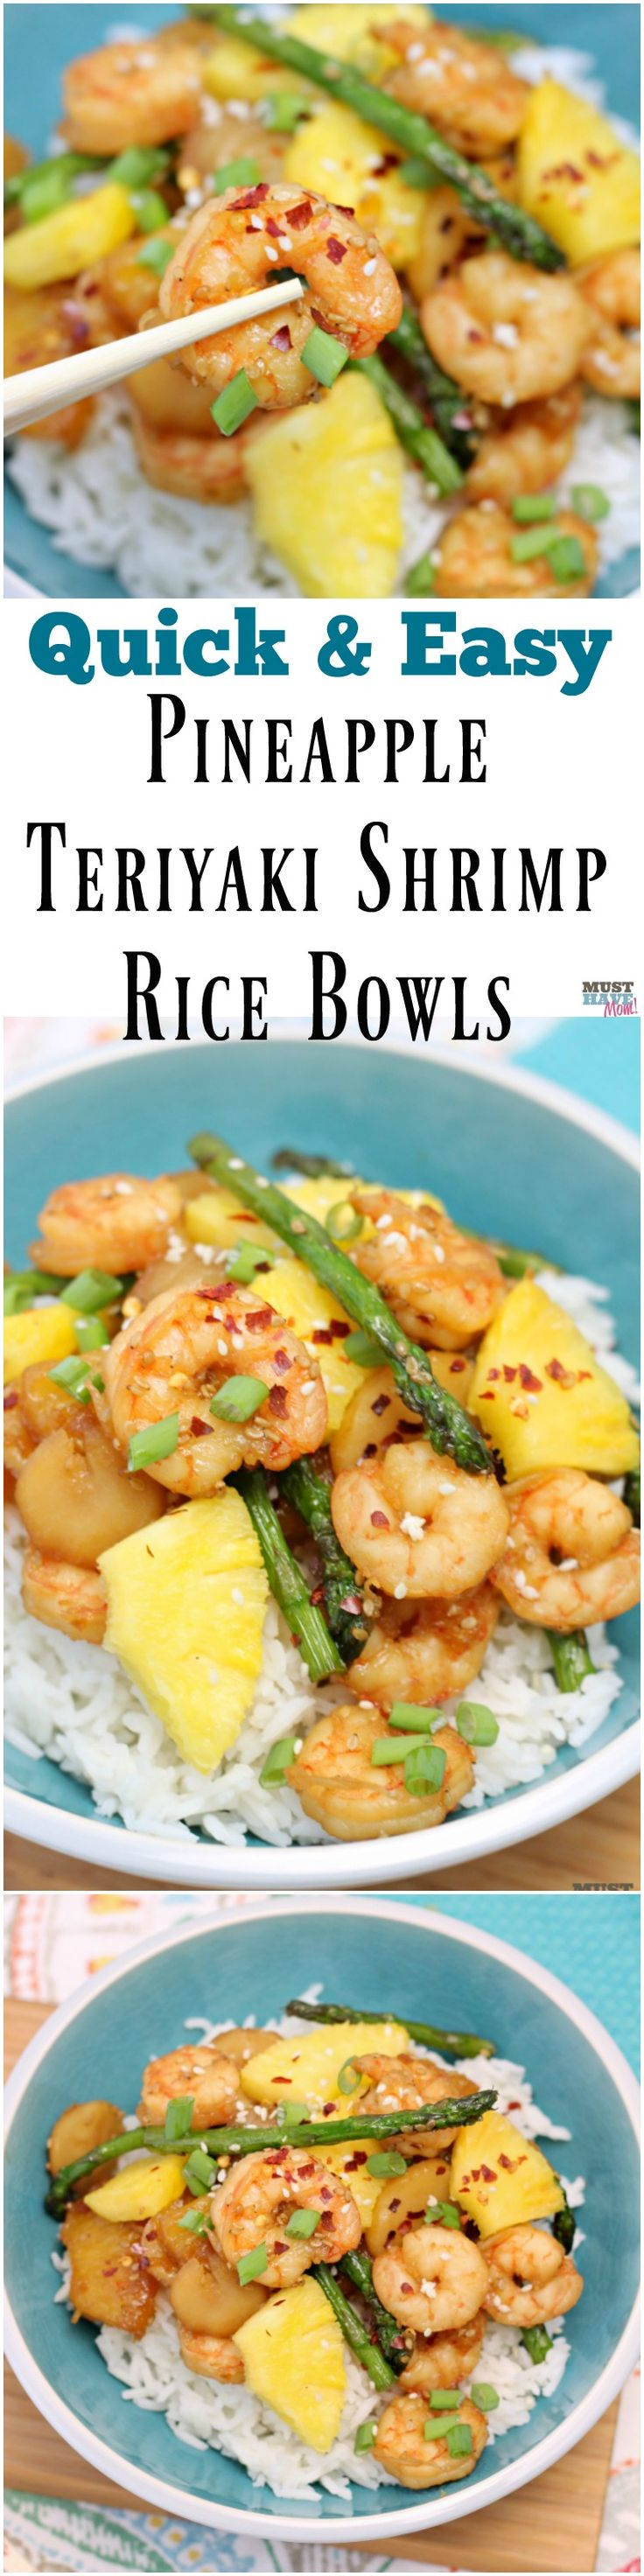 Quick and easy pineapple teriyaki shrimp rice bowls recipe! Easy shrimp recipes for busy weeknights that can be made in 20 minutes or less!